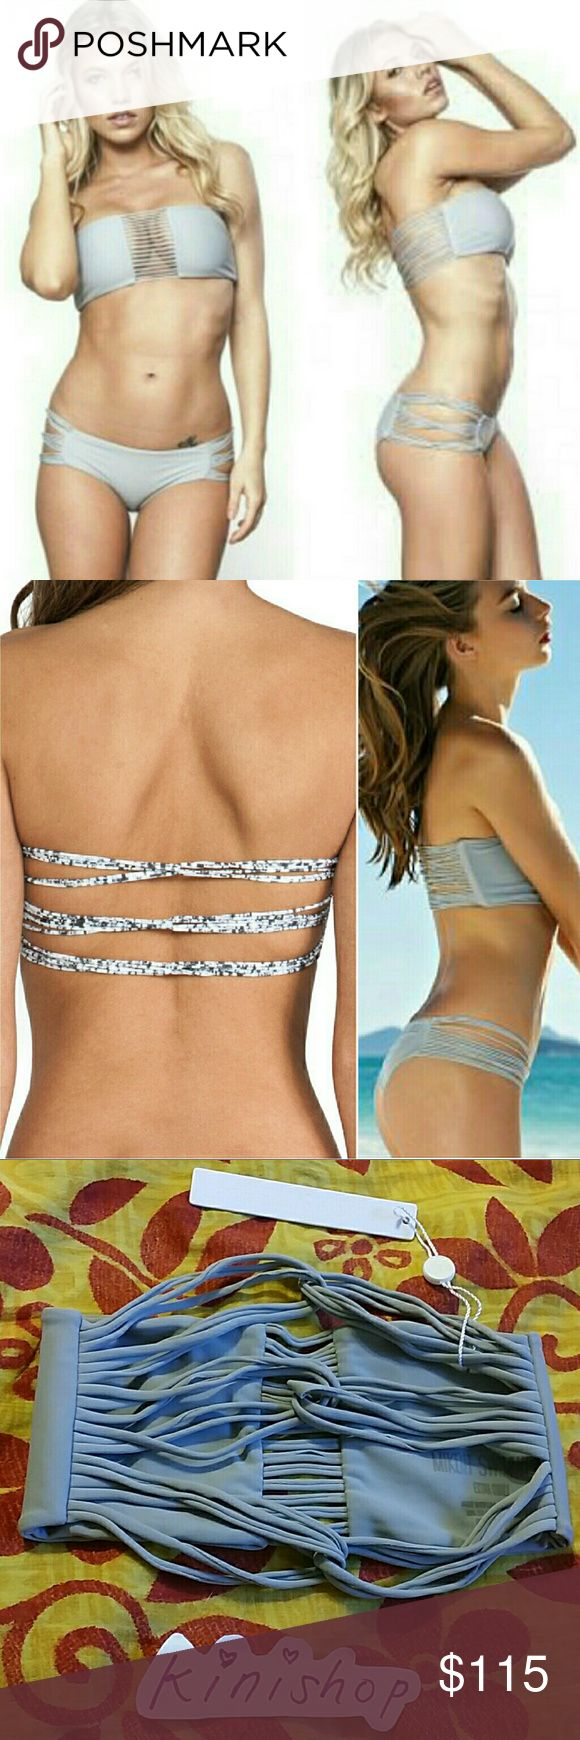 New mikoh sunset shark gray bandeau bikini top XS New with tag sunset strappy looped bandeau bikini top in shark (solid grey color) by mikoh swimwear. Extra small. Straps across front center. Looped strappy back. No trade please. The price is firm Mikoh Swim Bikinis